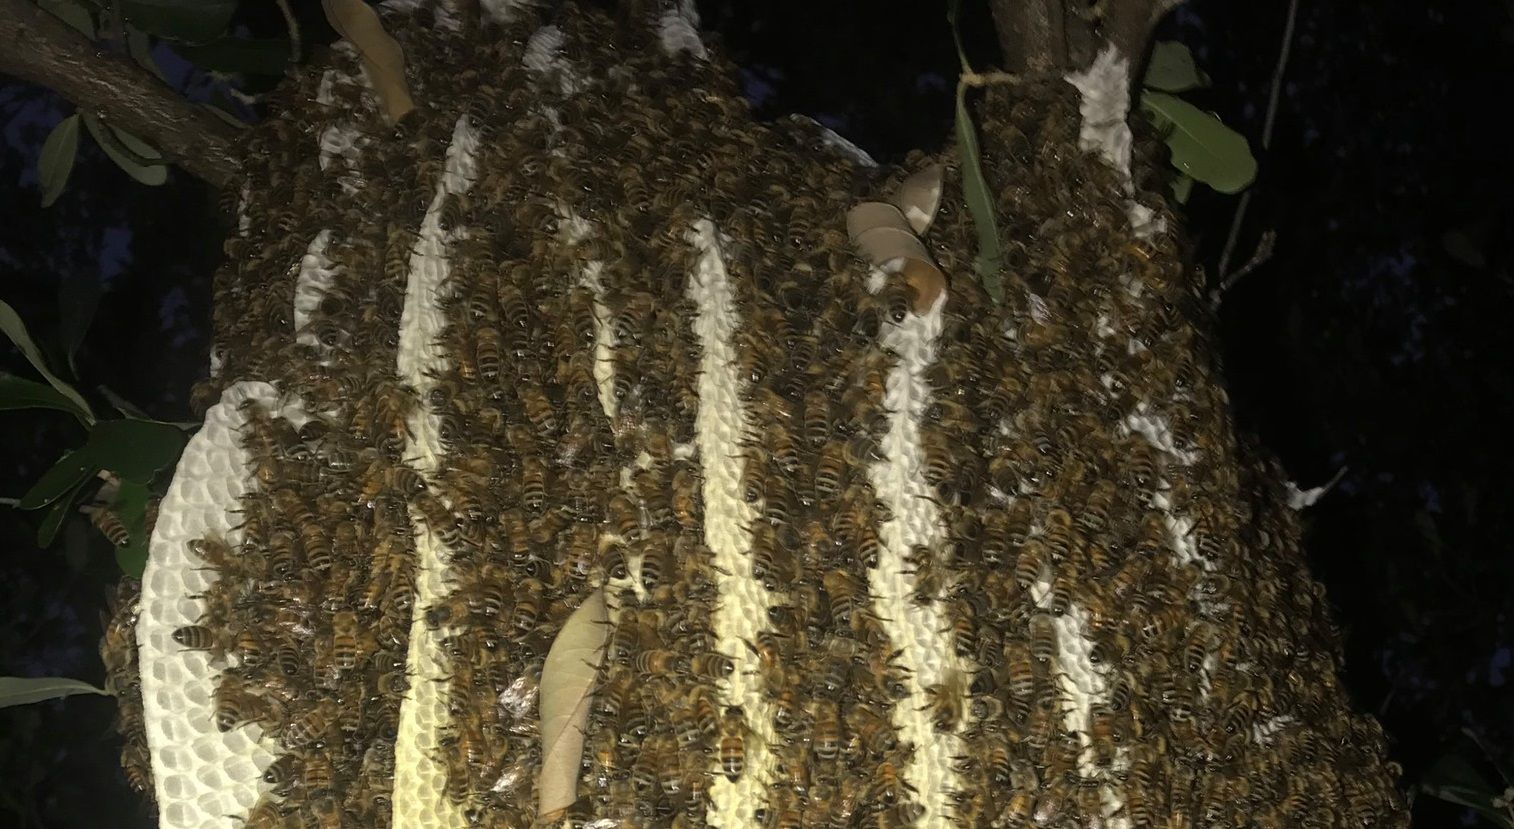 Rainey Rogers estimated a beehive found in a Celina woman's backyard was home to about 25,000 bees.